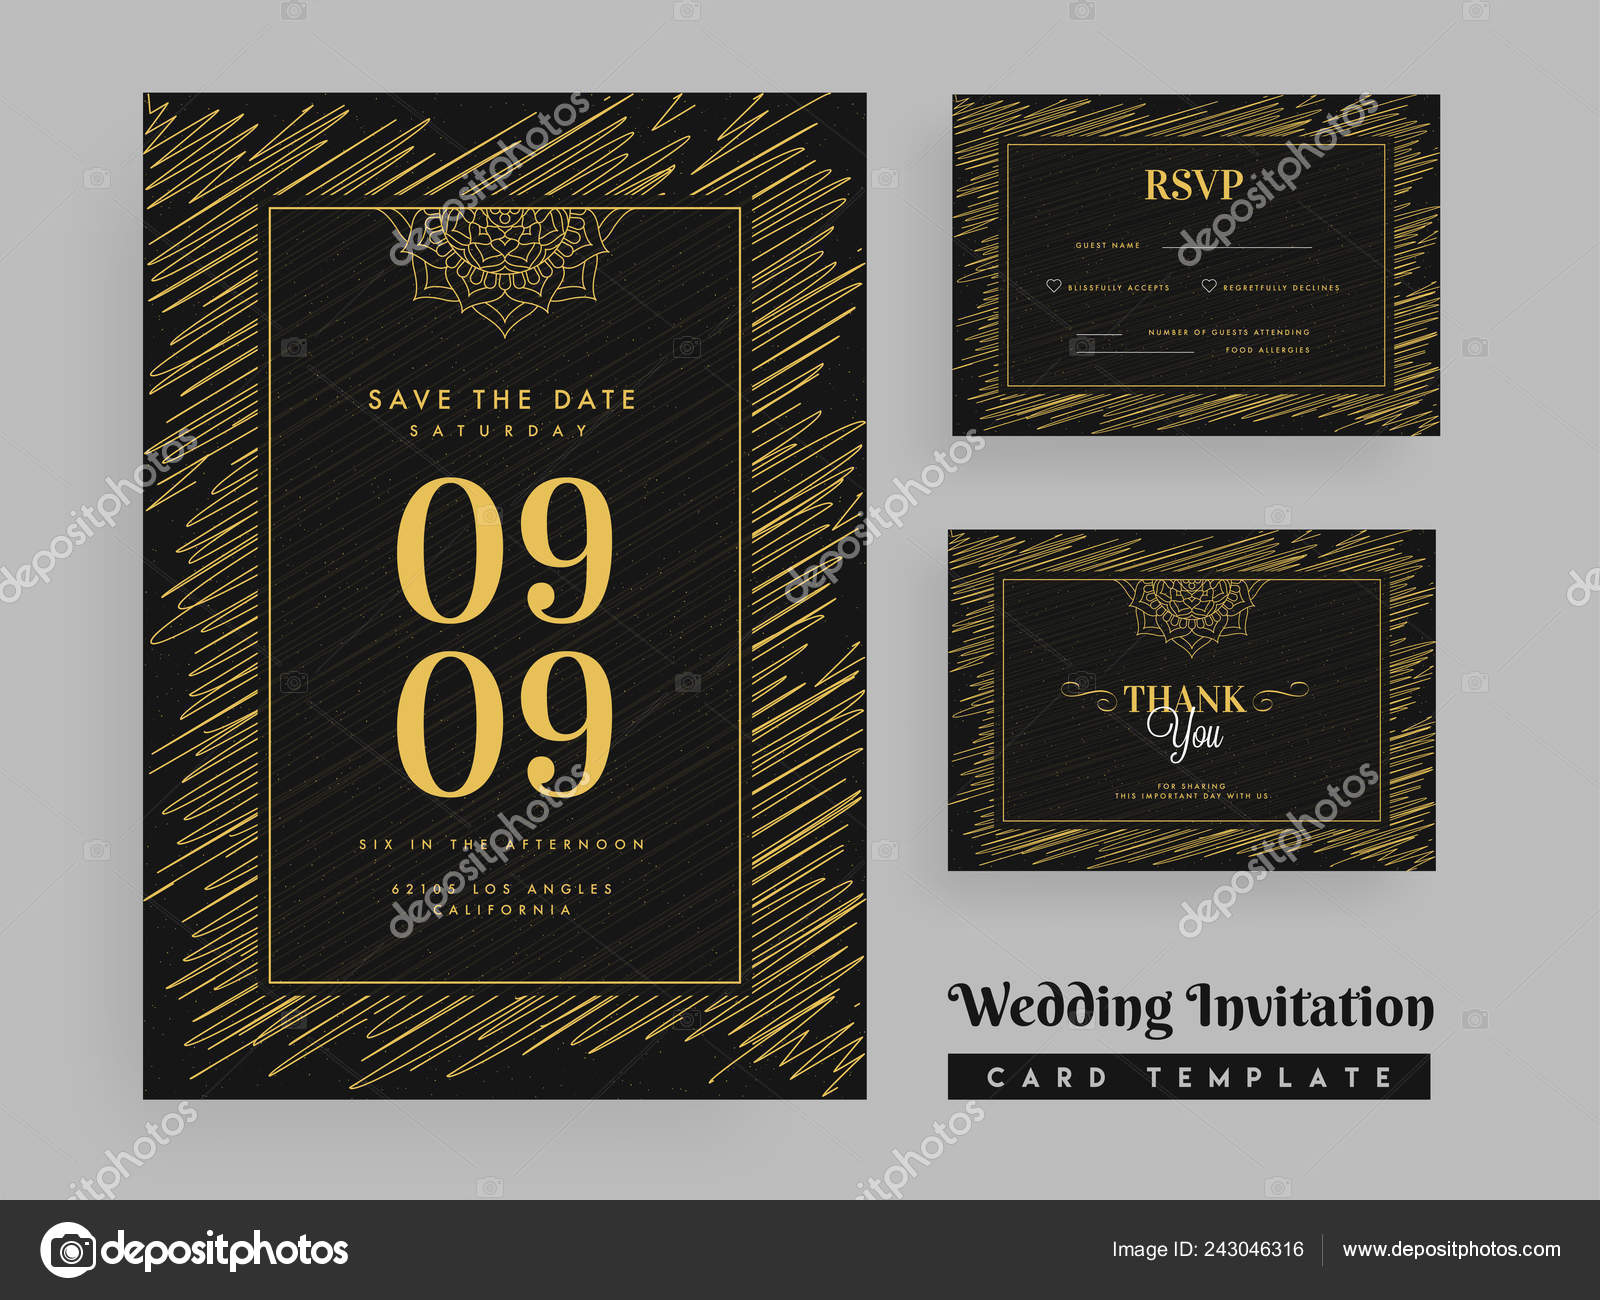 rsvp cards for weddings templates.html